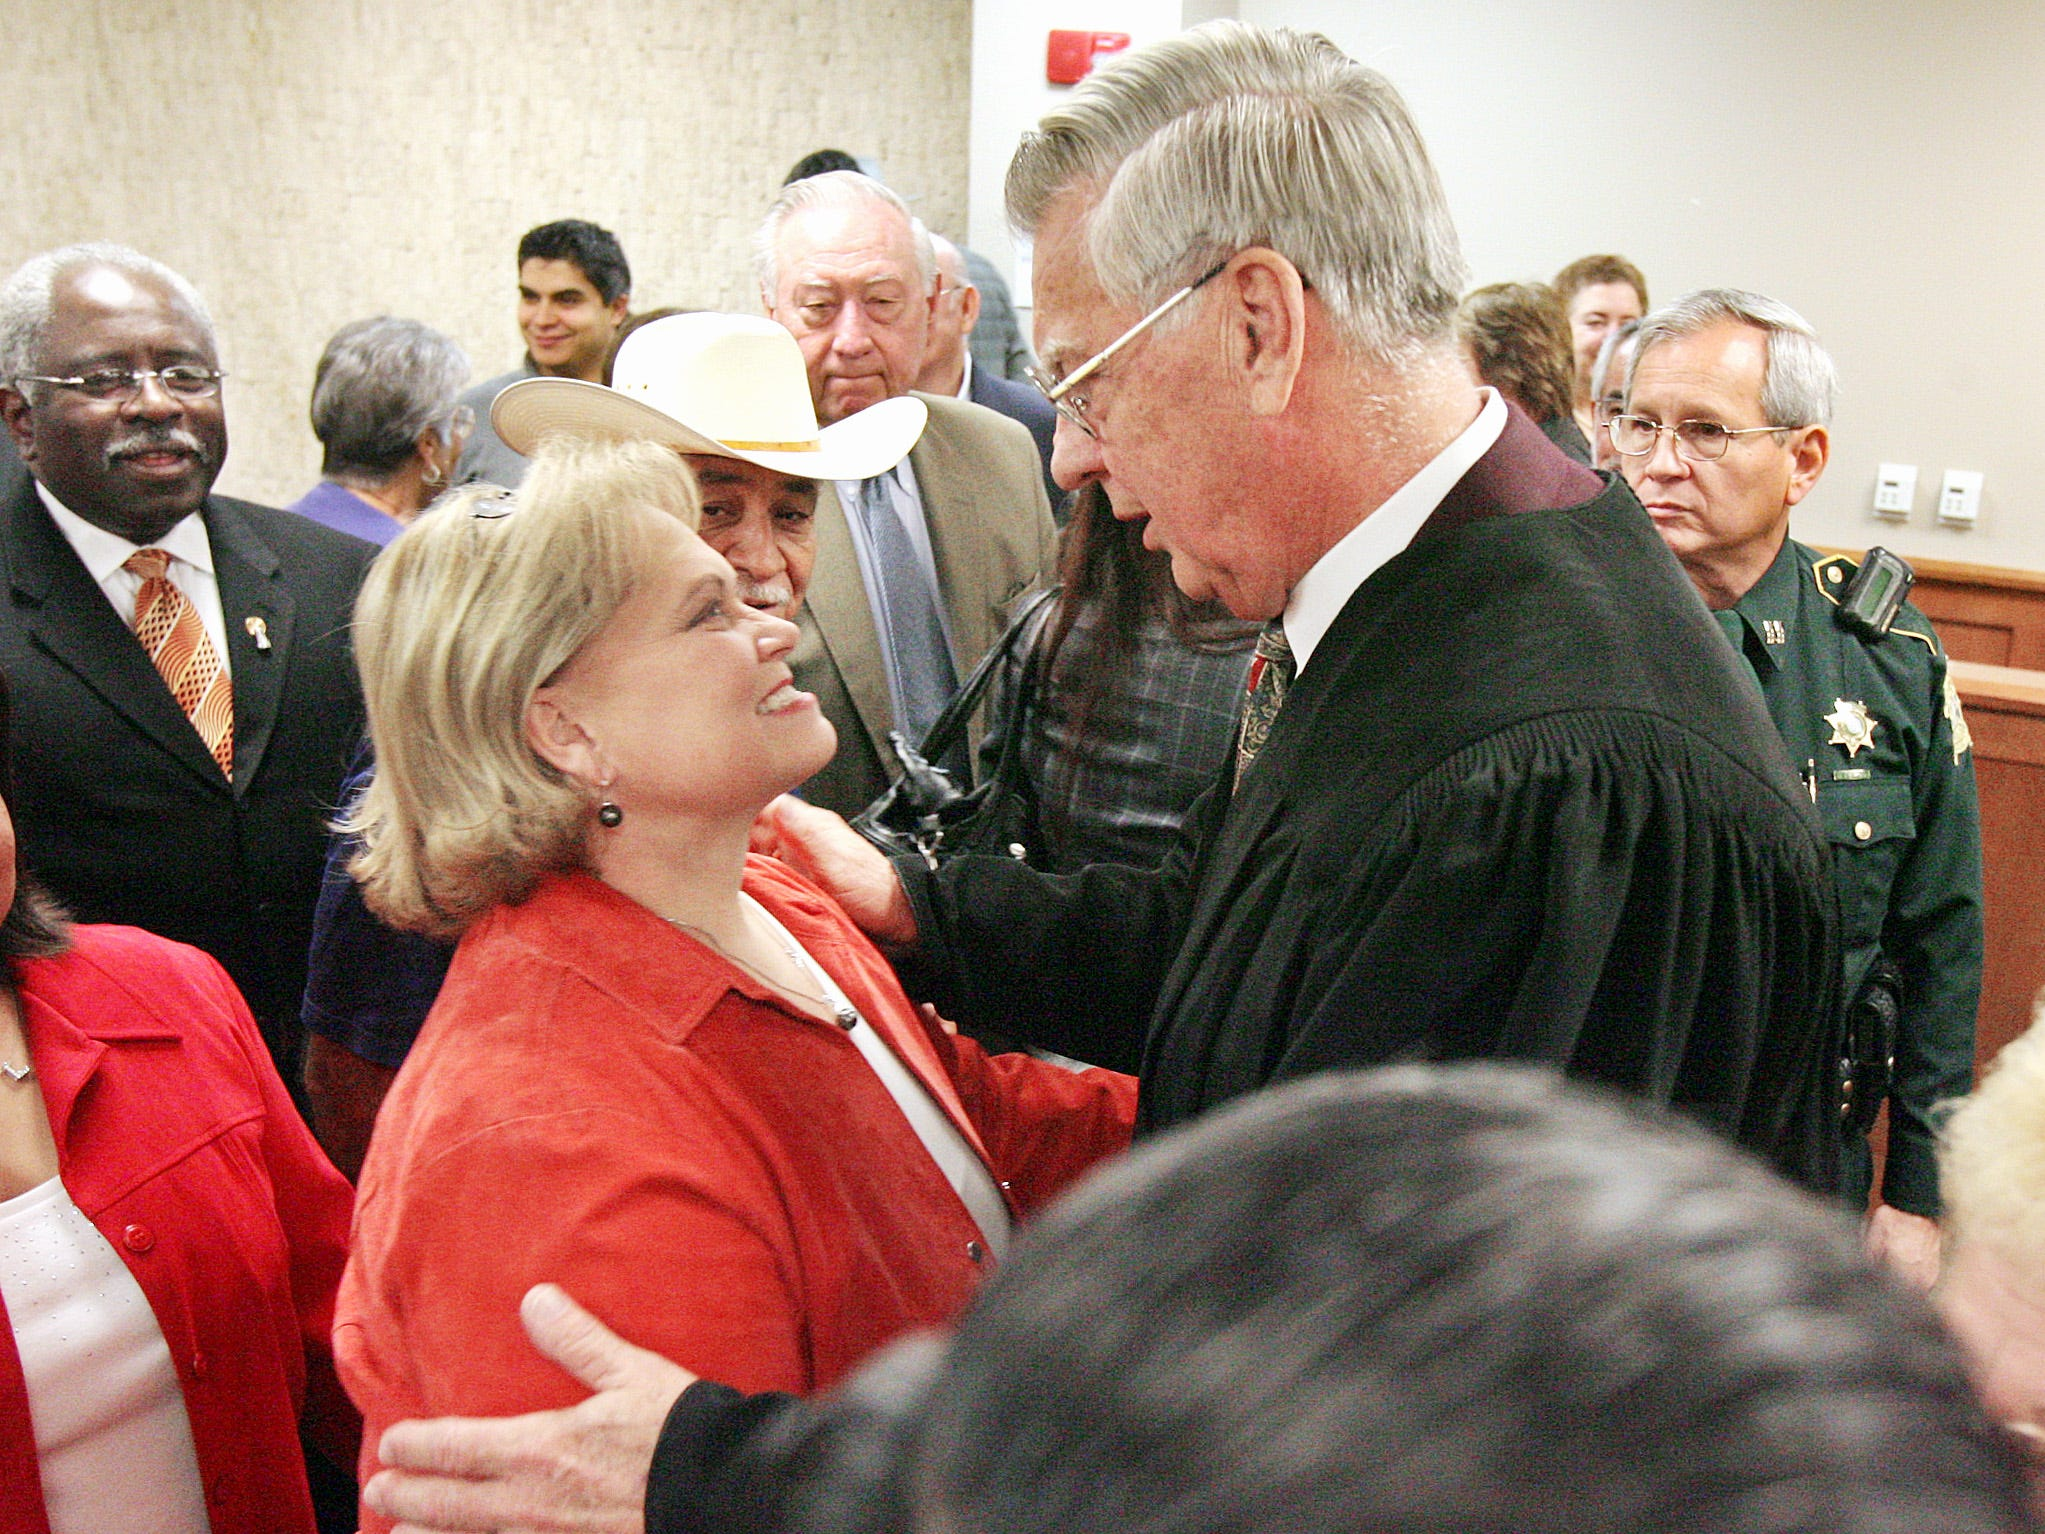 Newly sworn-in Nueces County Judge Loyd Neal talks with 117th District Court Judge Sandra Watts following the swearing in ceremony in 2006.